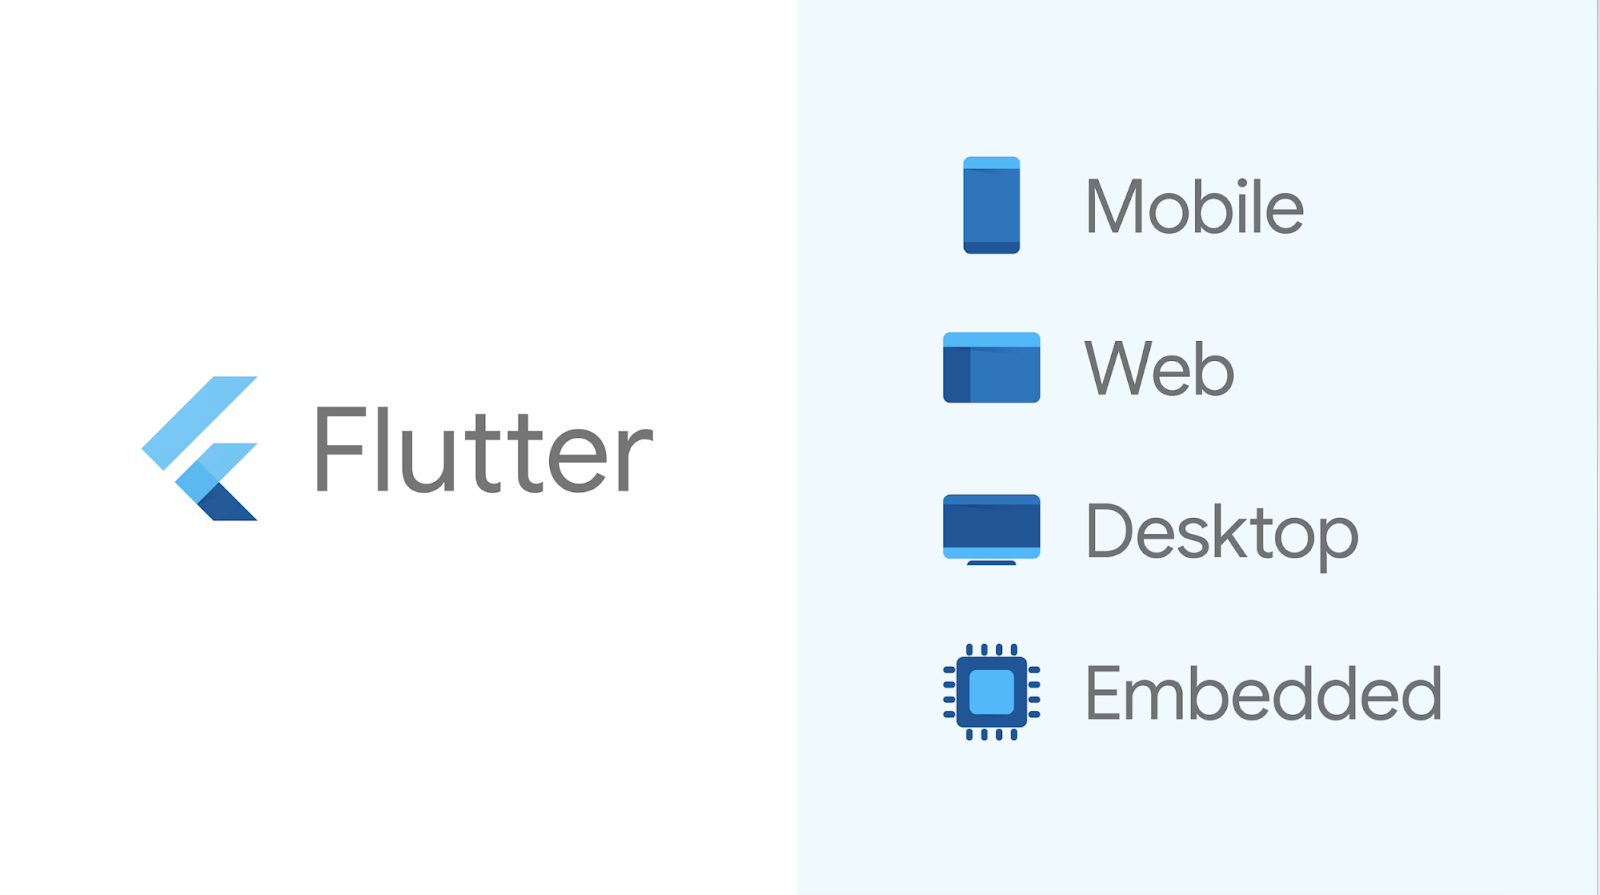 Flutter Mobile, Web, Desktop, and Embedded